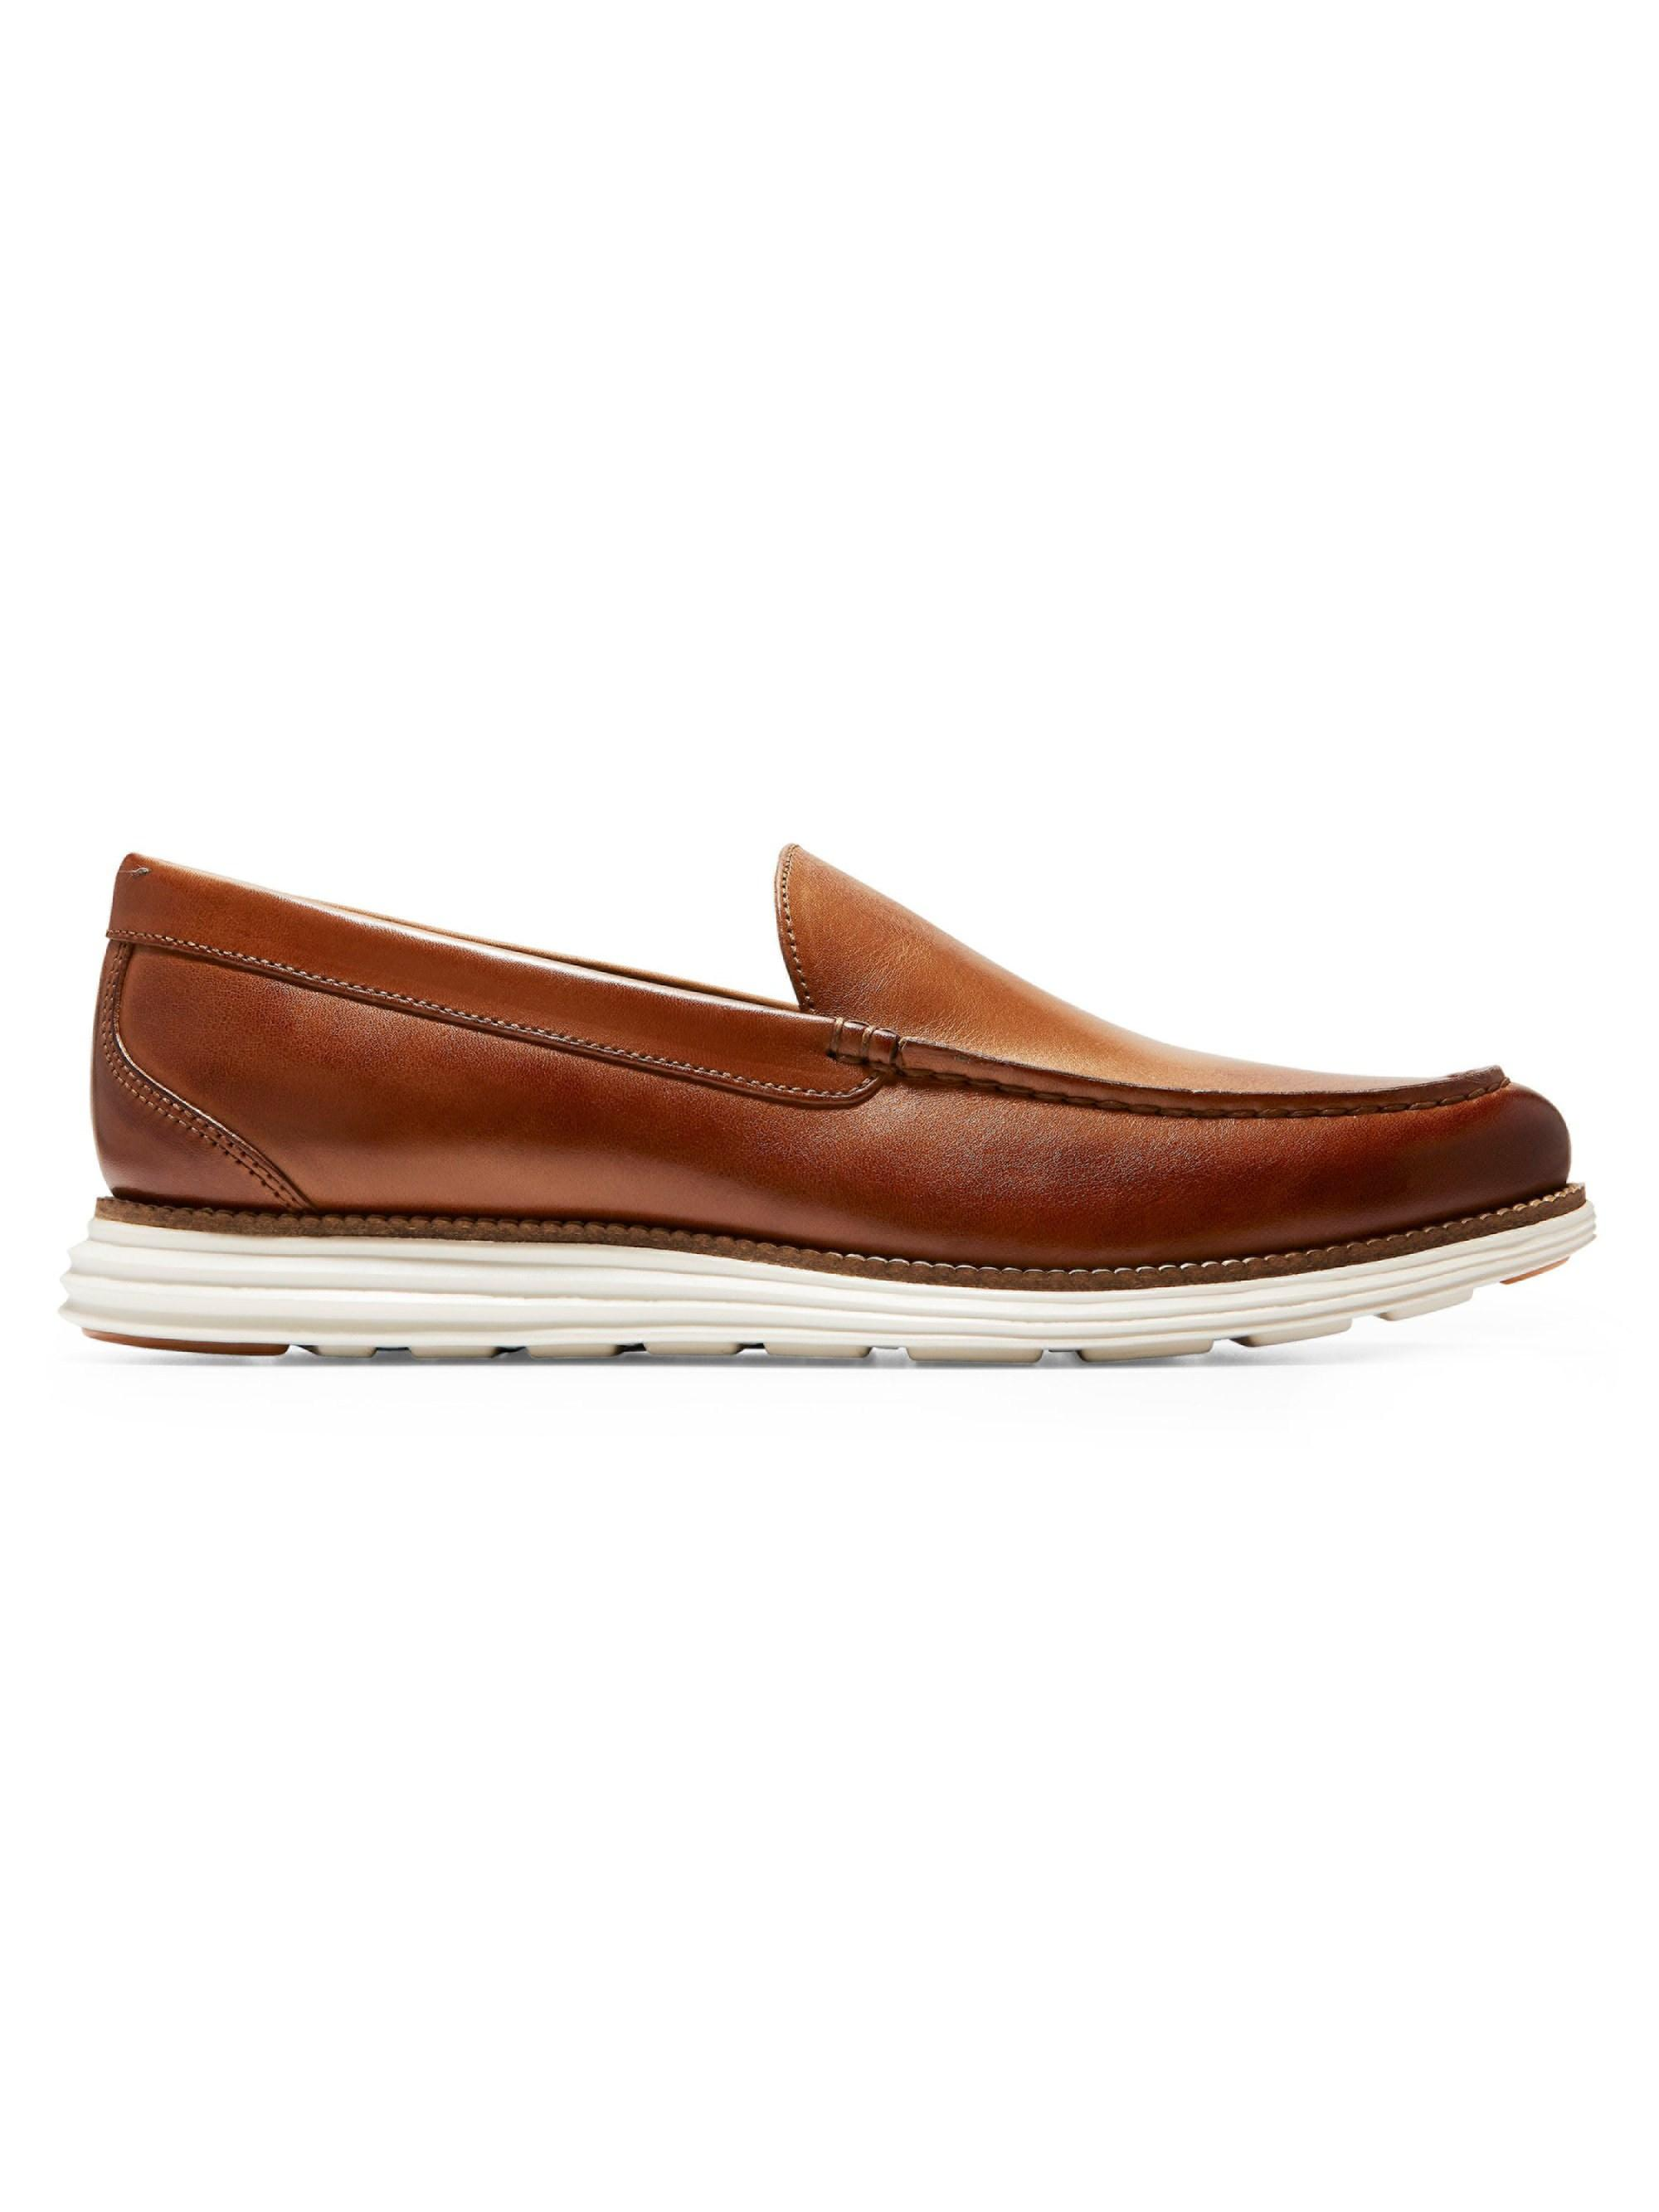 20b72a9d5 Cole Haan. Brown Men's Original Grand Venetian Leather Loafers - British Tan  Ivory